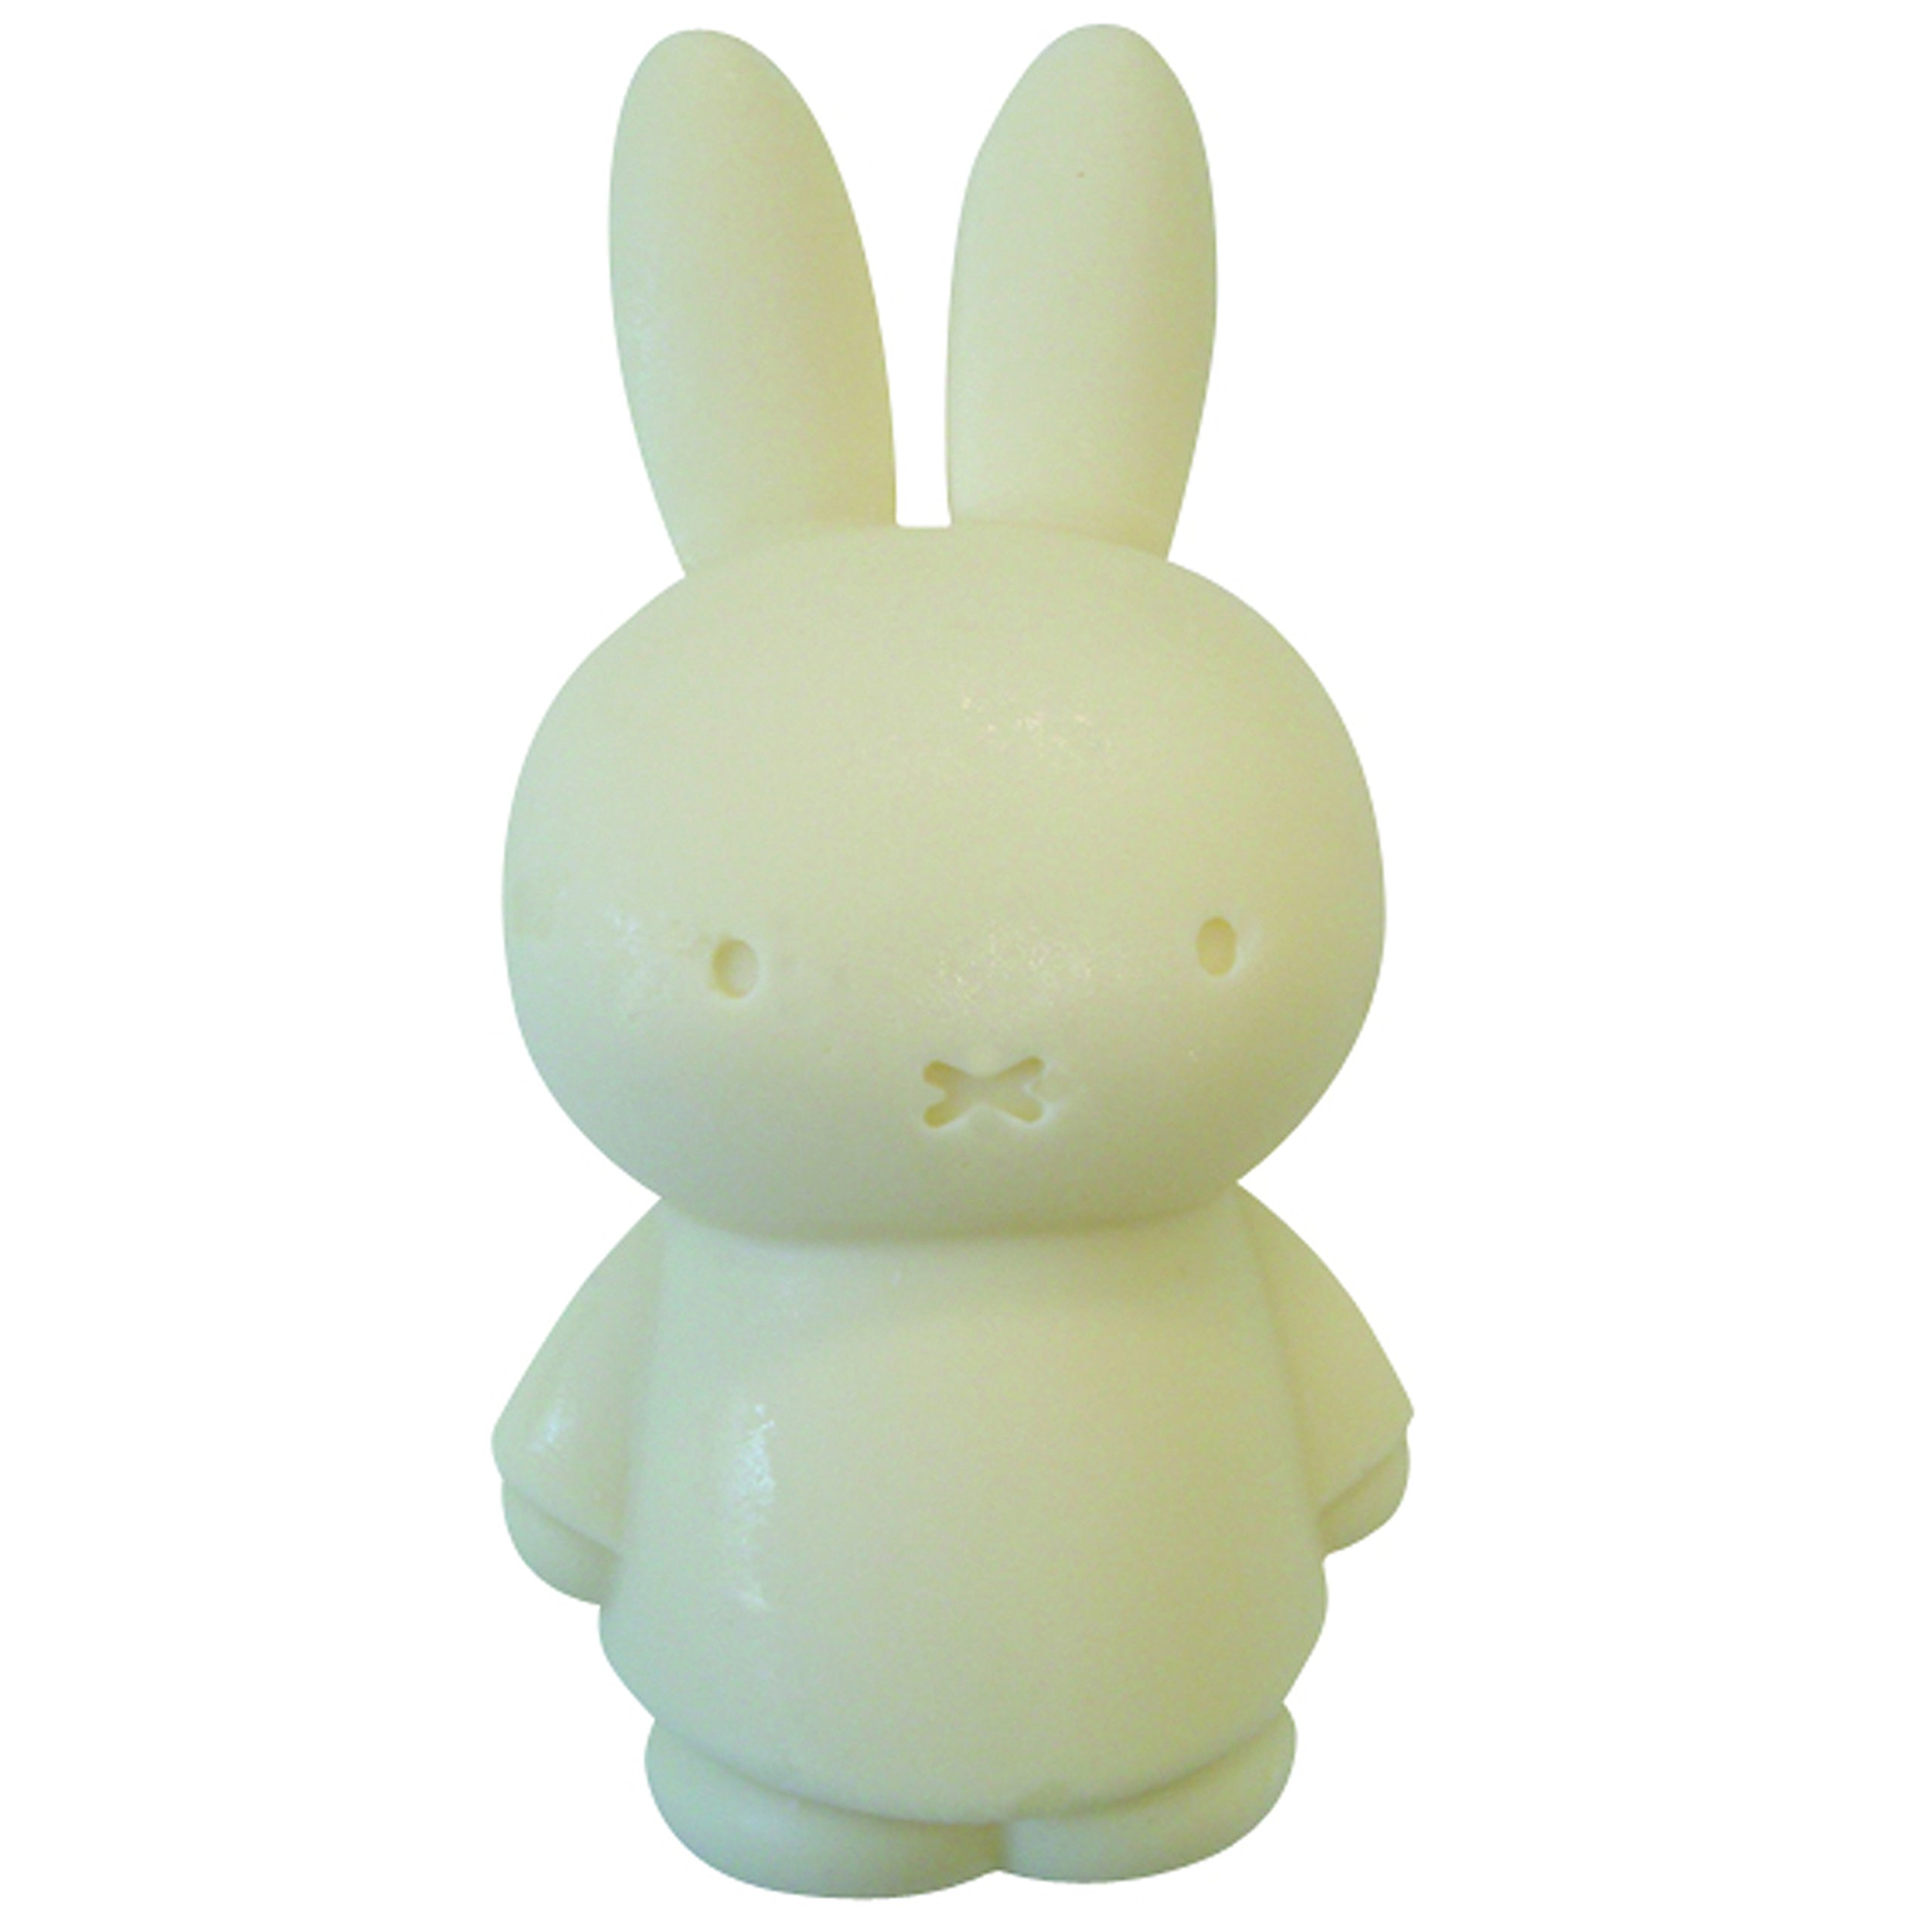 Miffy silicon ice mold (japan import)